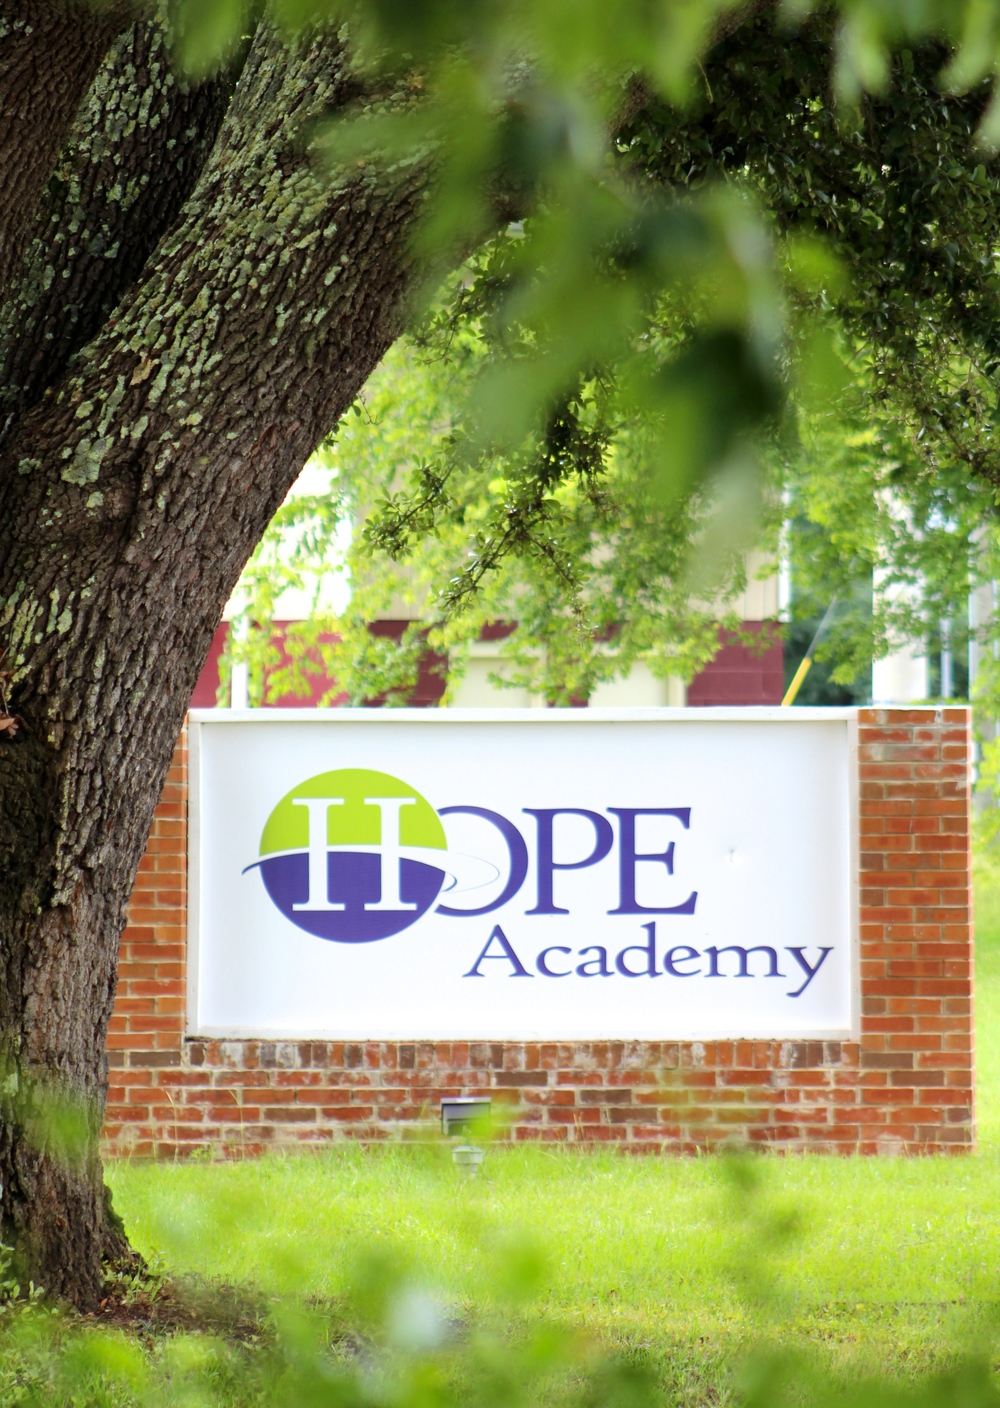 Hope Academy sign.jpg